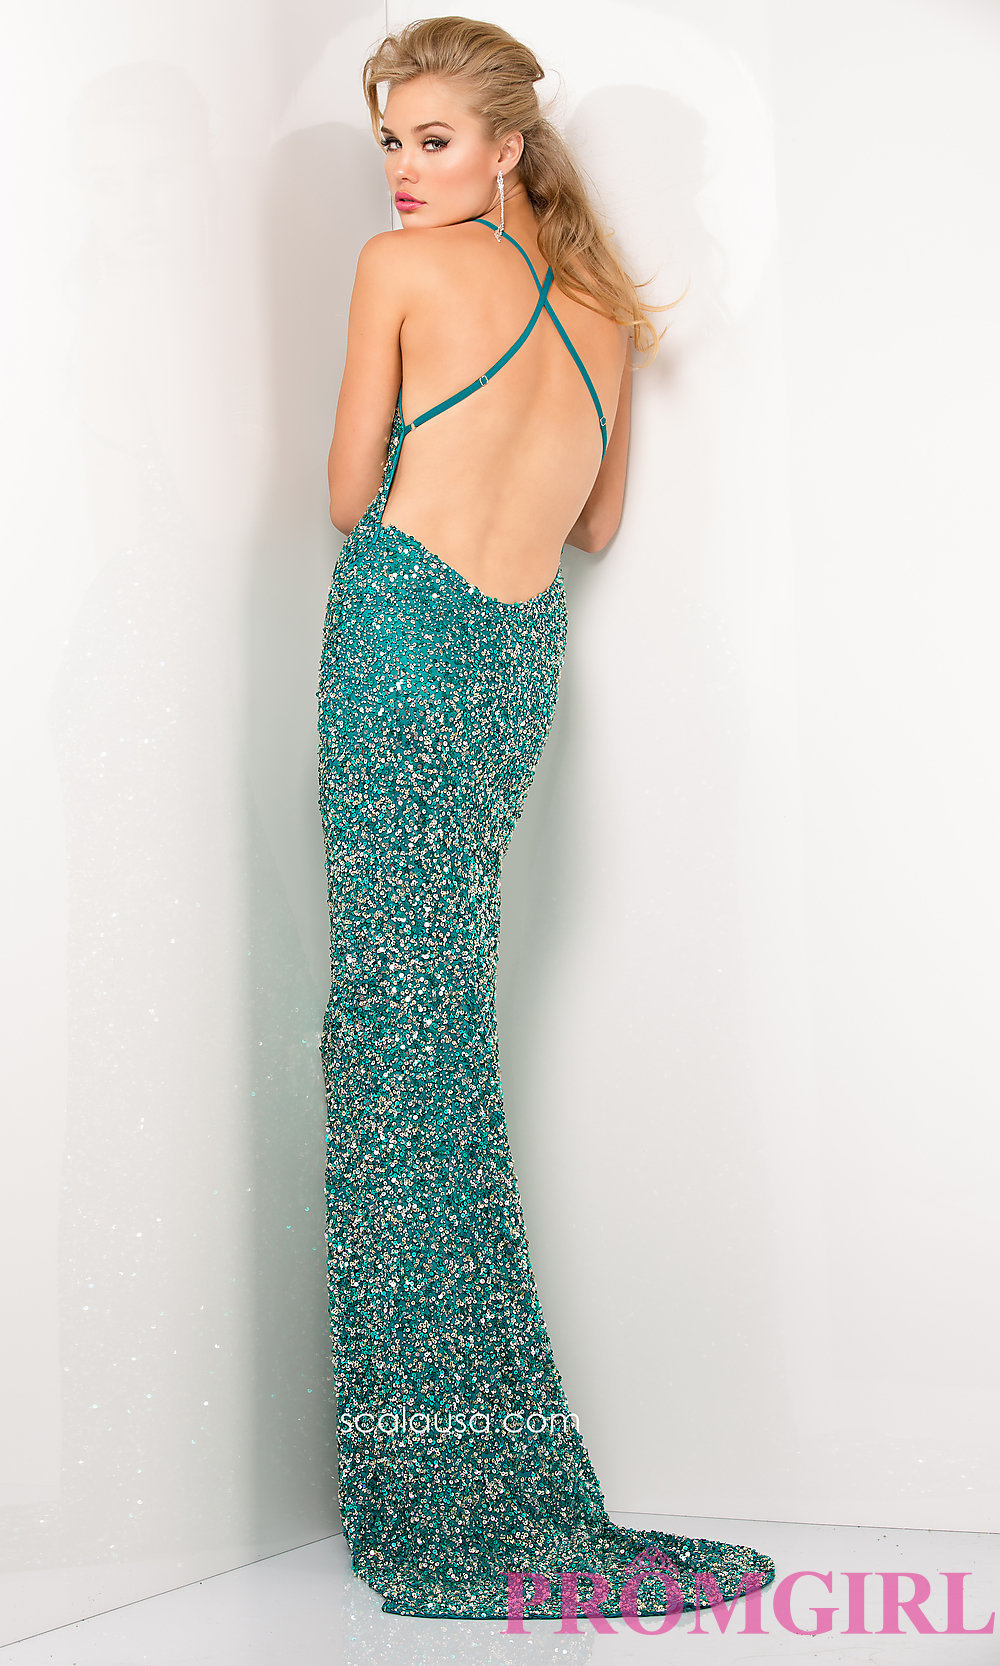 Neck sequin dress with open back by scala